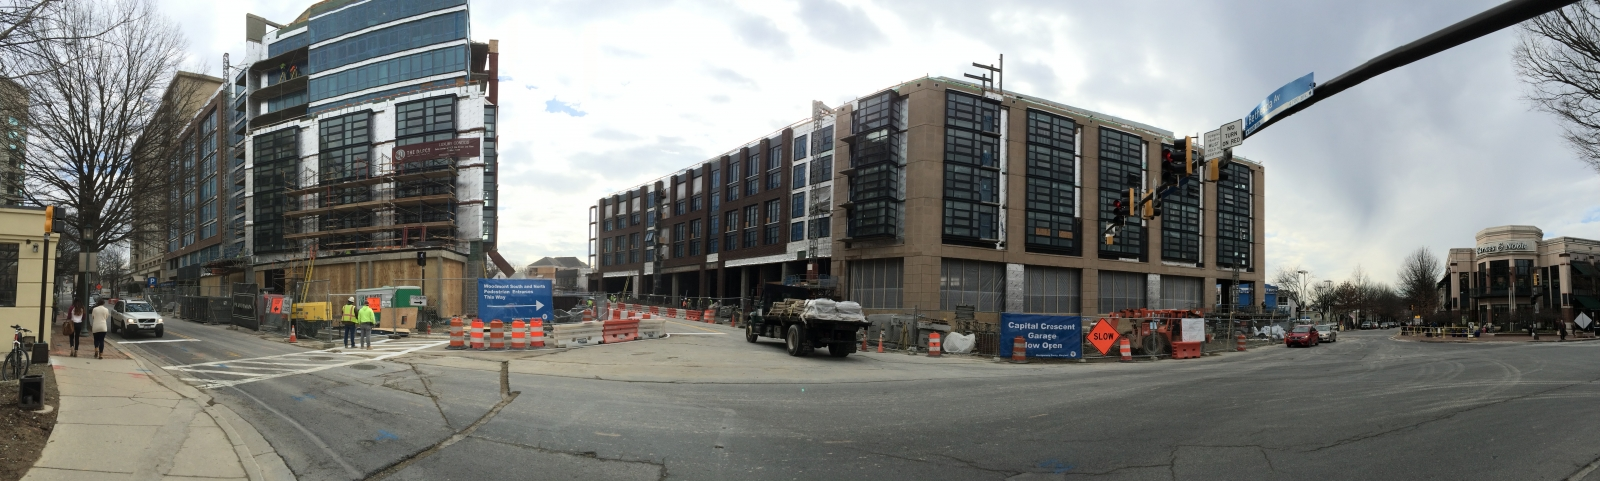 Woodmont Avenue New Parking Garage Open In Bethesda